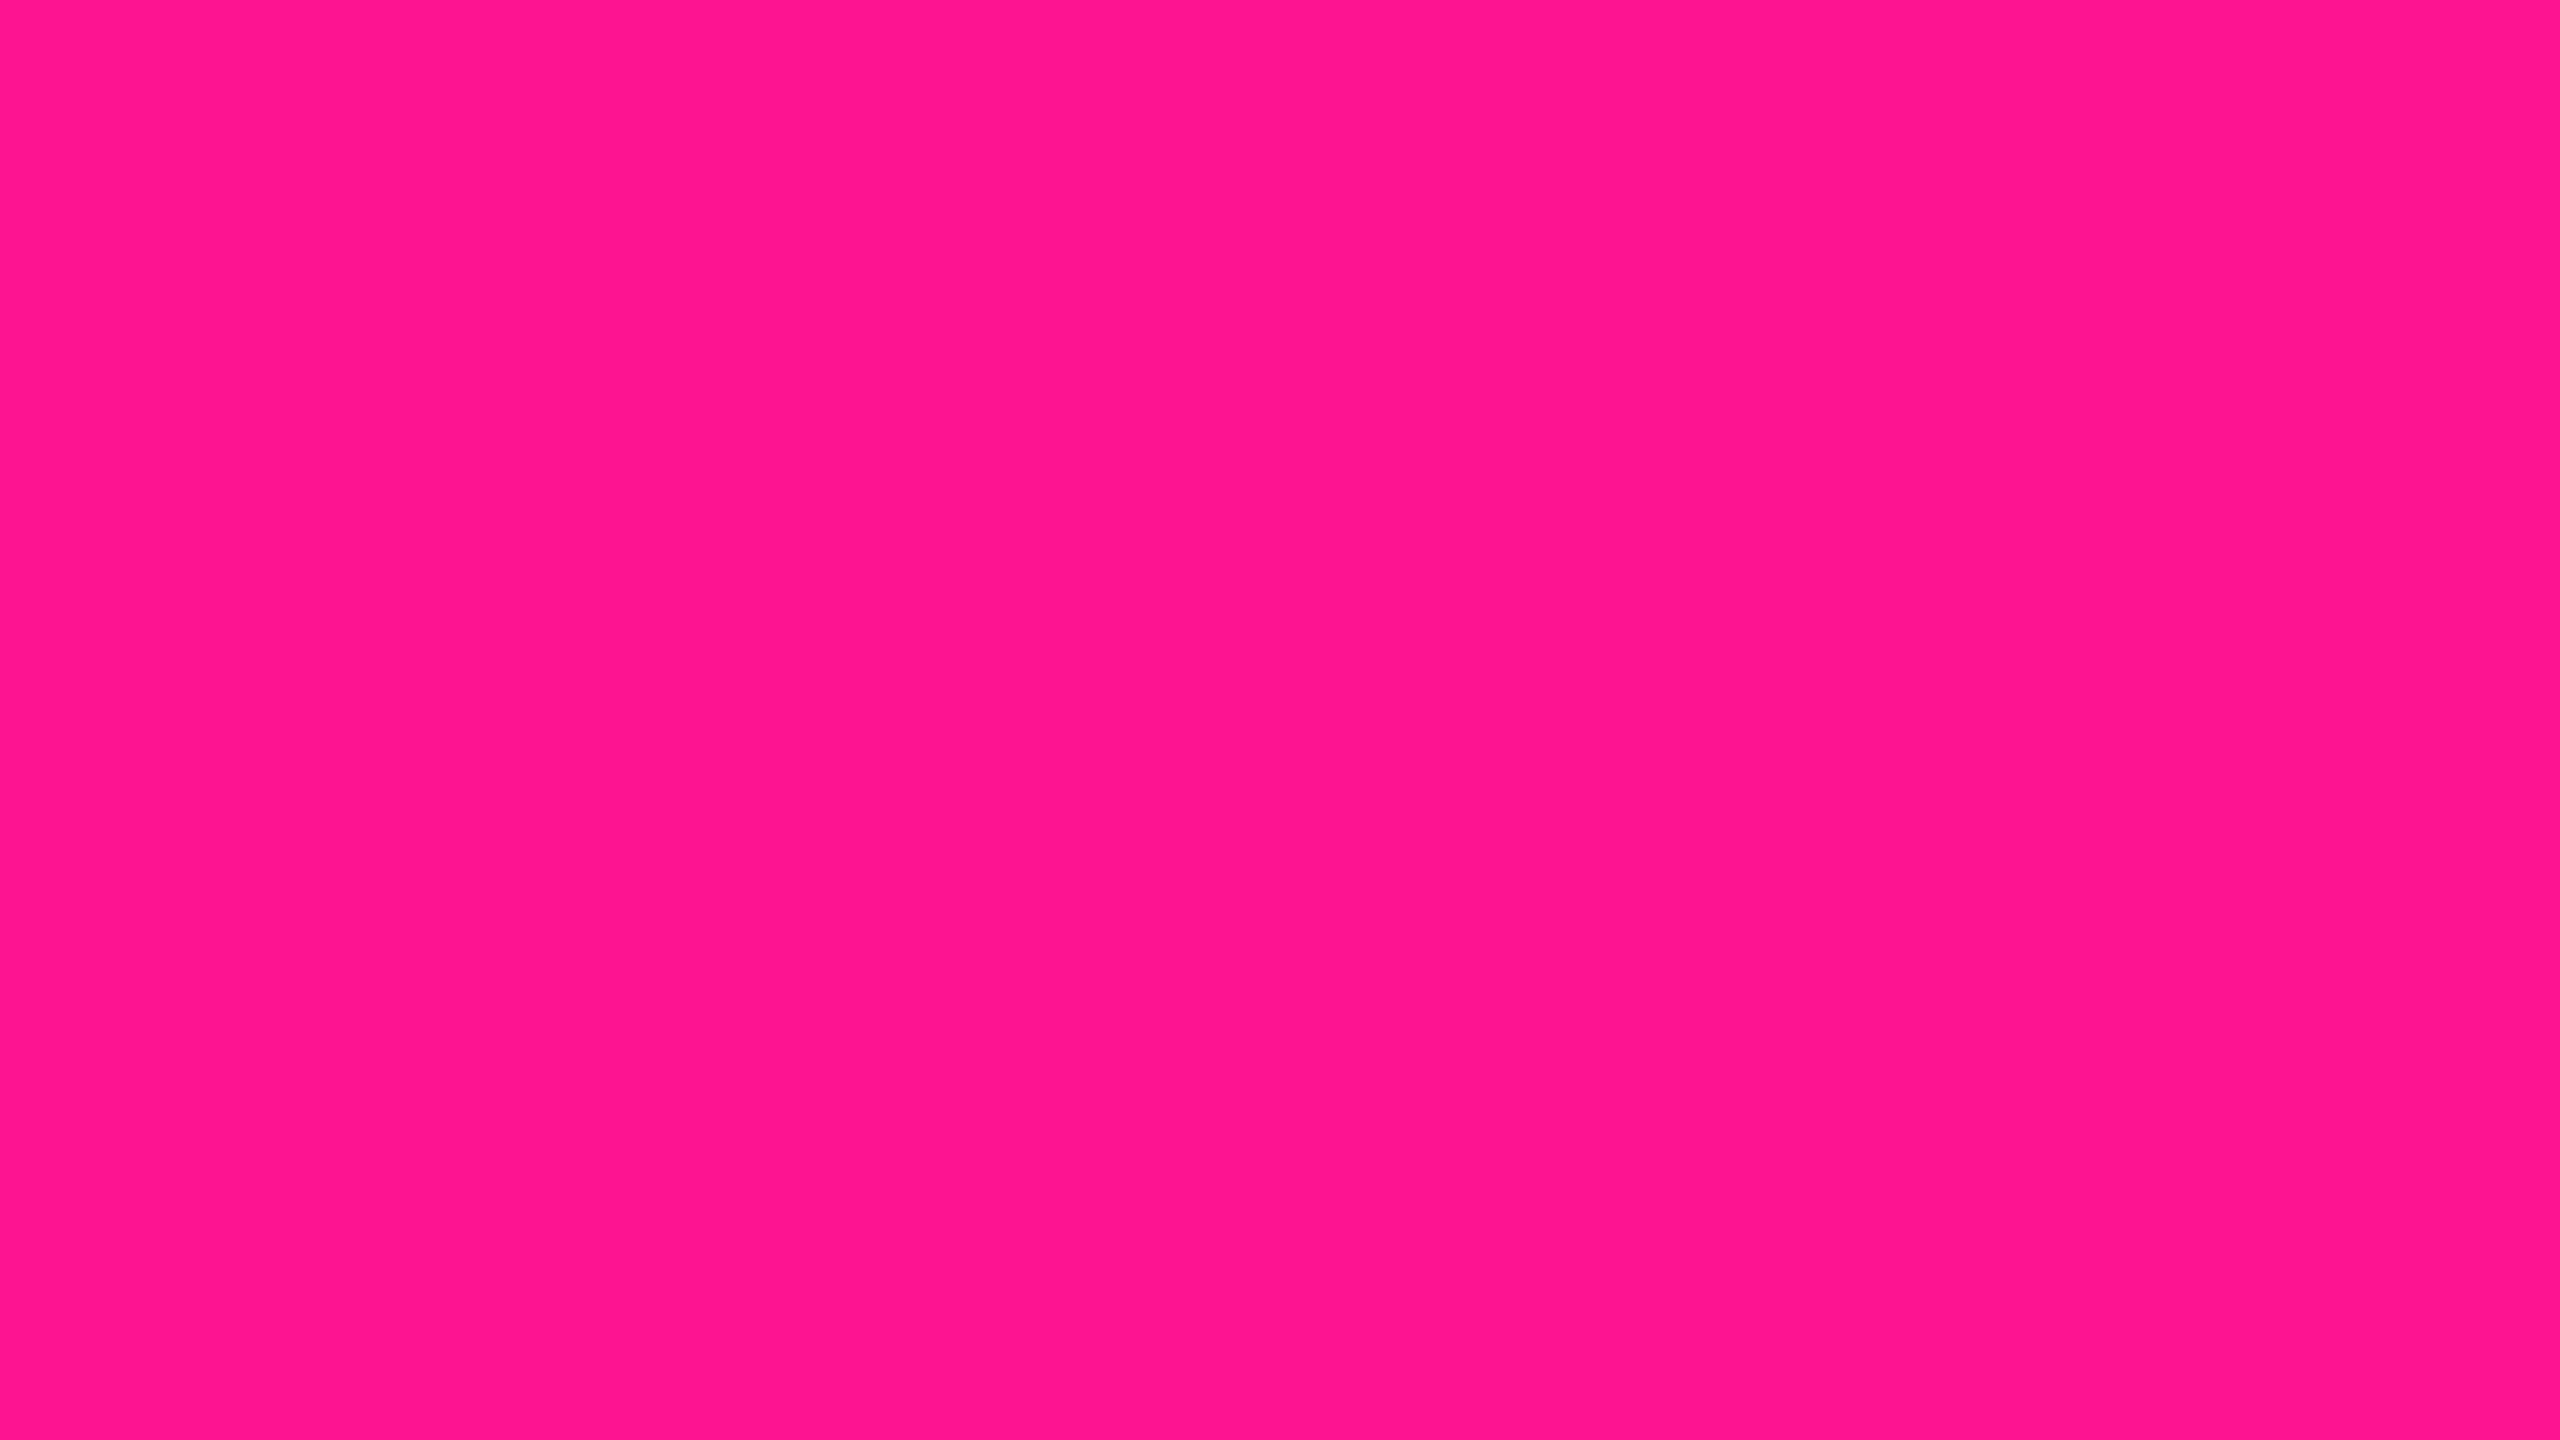 Plain Color Pink Backgrounds Images Pictures   Becuo 2560x1440